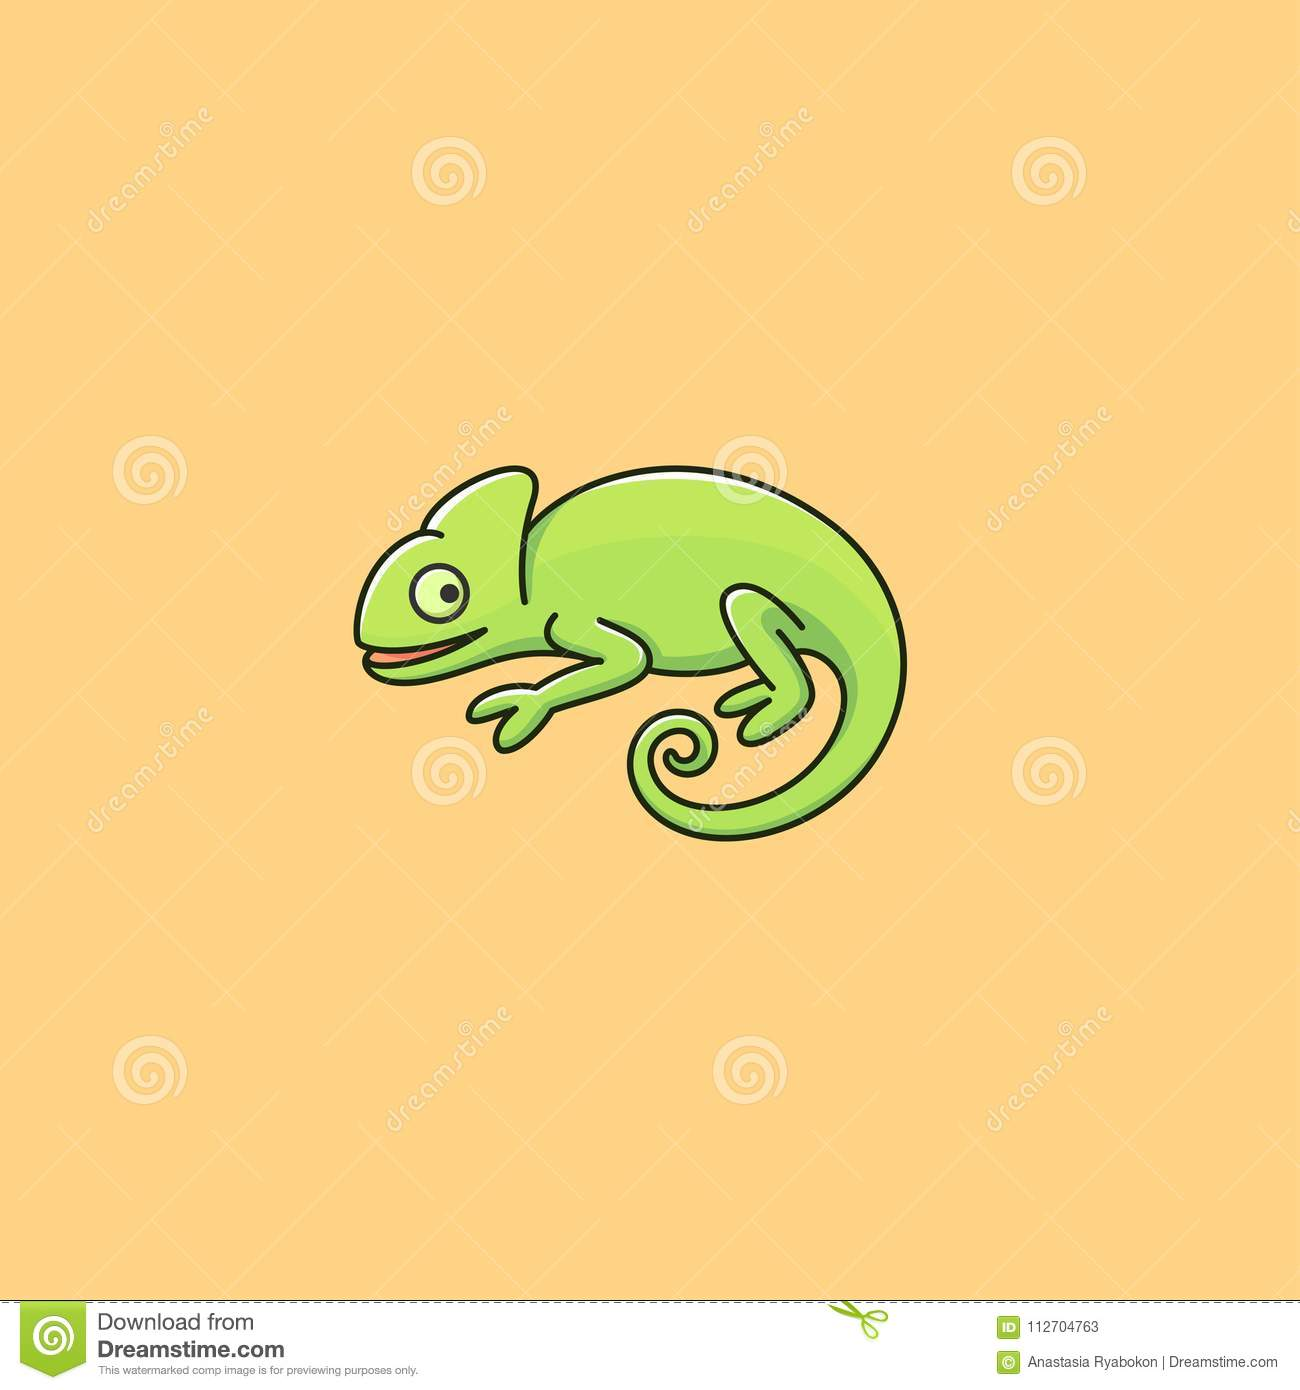 Chameleon Style Chameleon Cartoon Style Logo Stock Vector Illustration Of Animal